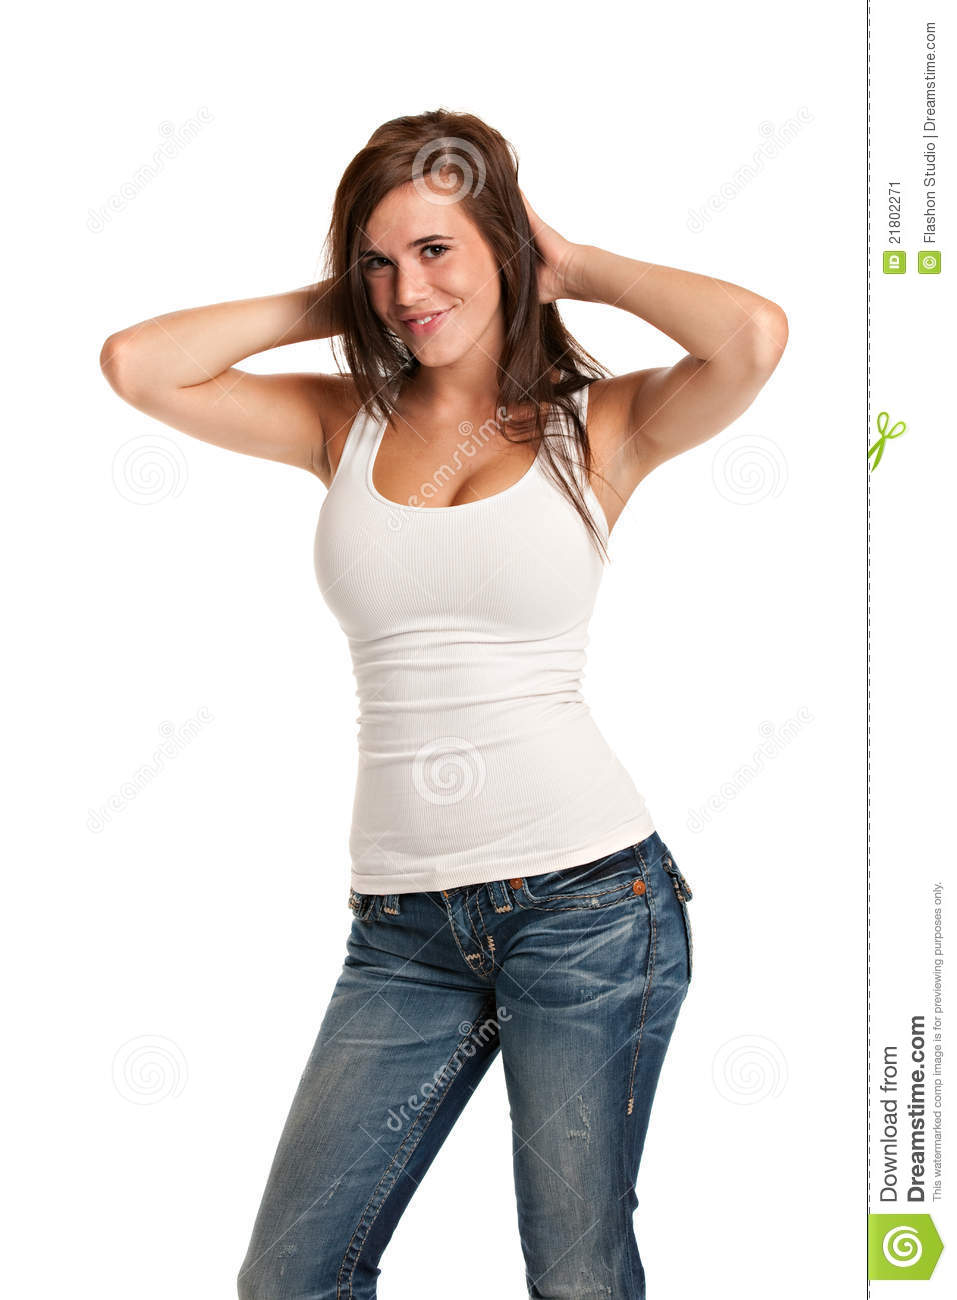 Happy Casual Dressed Young Female Highschool Student Isolated on White ...